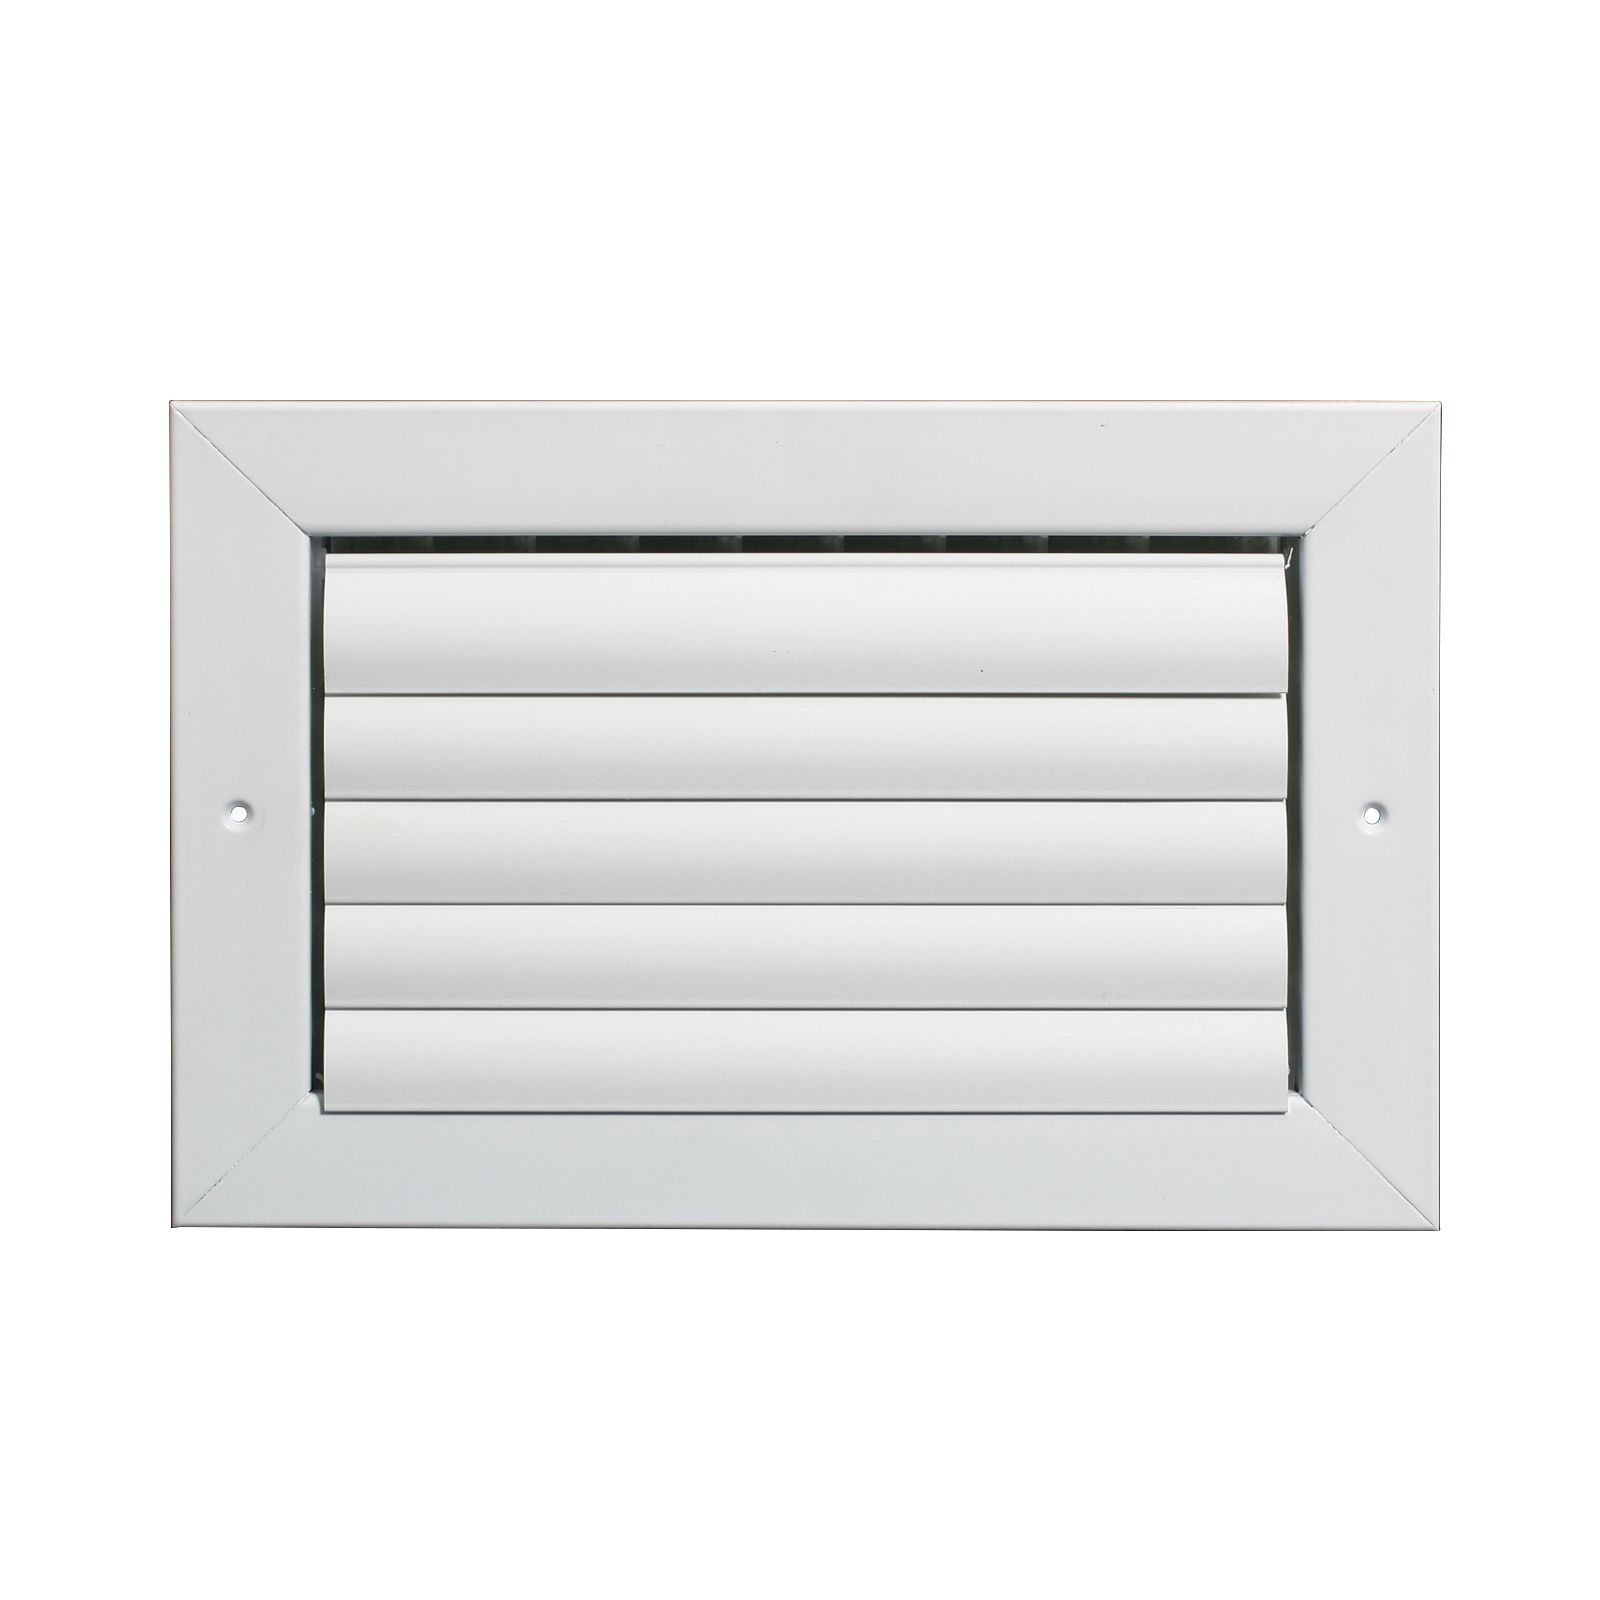 "Grille Tech CL1M0806 - Aluminum Ceiling 1-Way Deflection Supply, Multi-shutter 8"" X 6"" White"